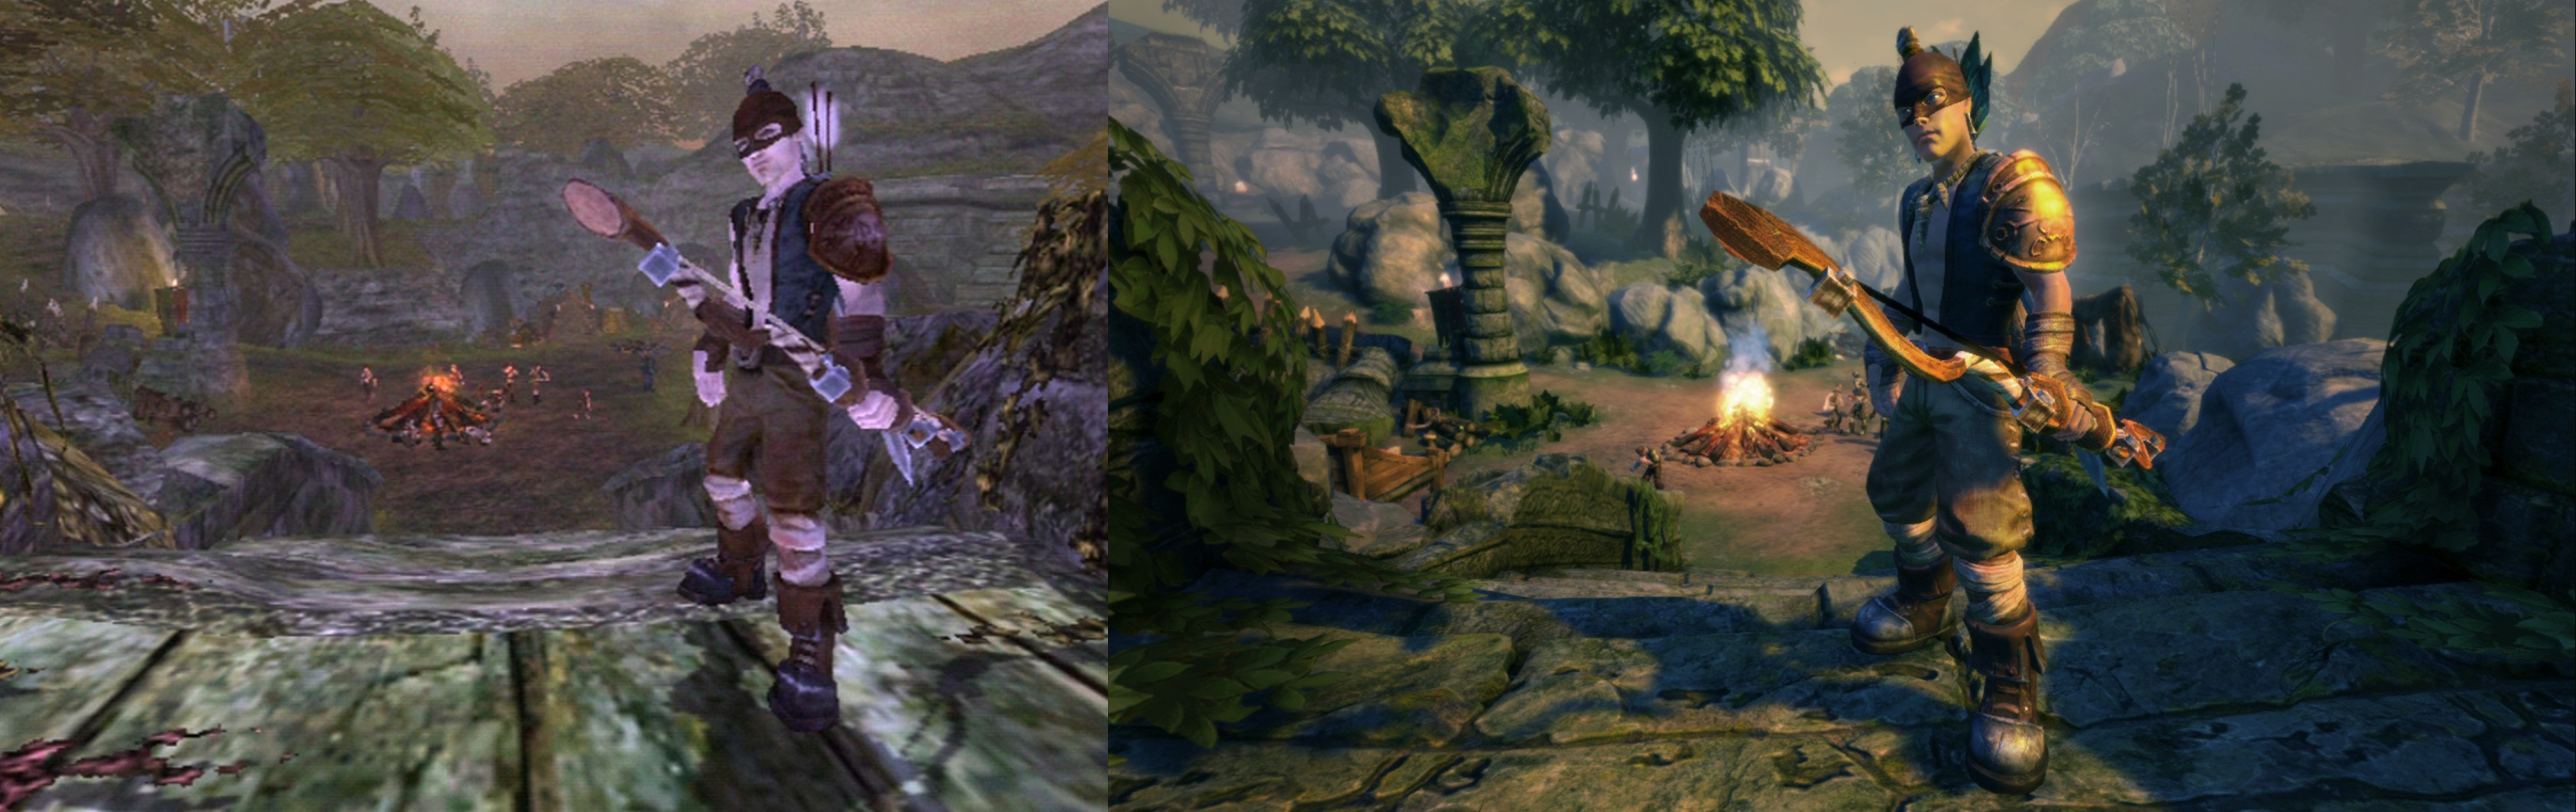 Fable Anniversary comparison